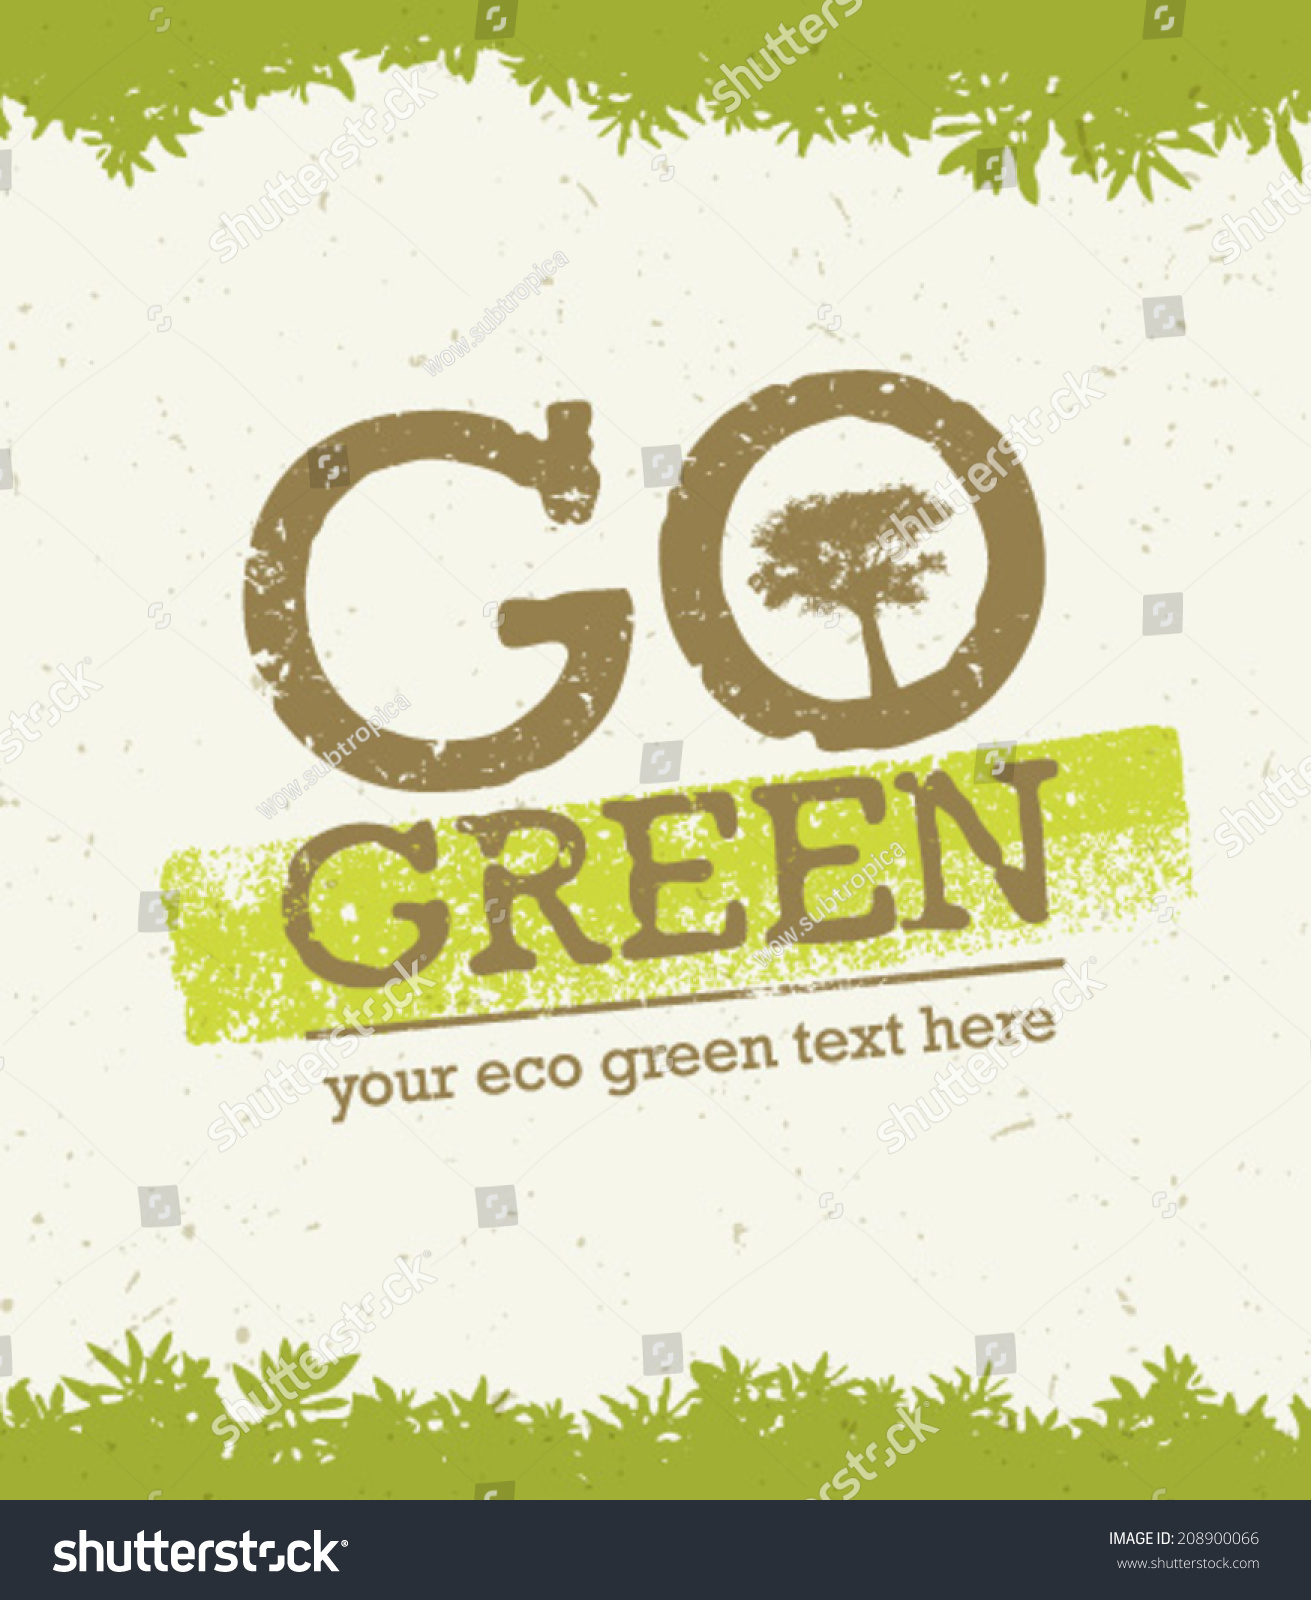 going green by recycling essay Going green essay - get an a+ grade even for the most urgent essays professional and affordable report to simplify your life why worry about the dissertation get the required assistance on the website.